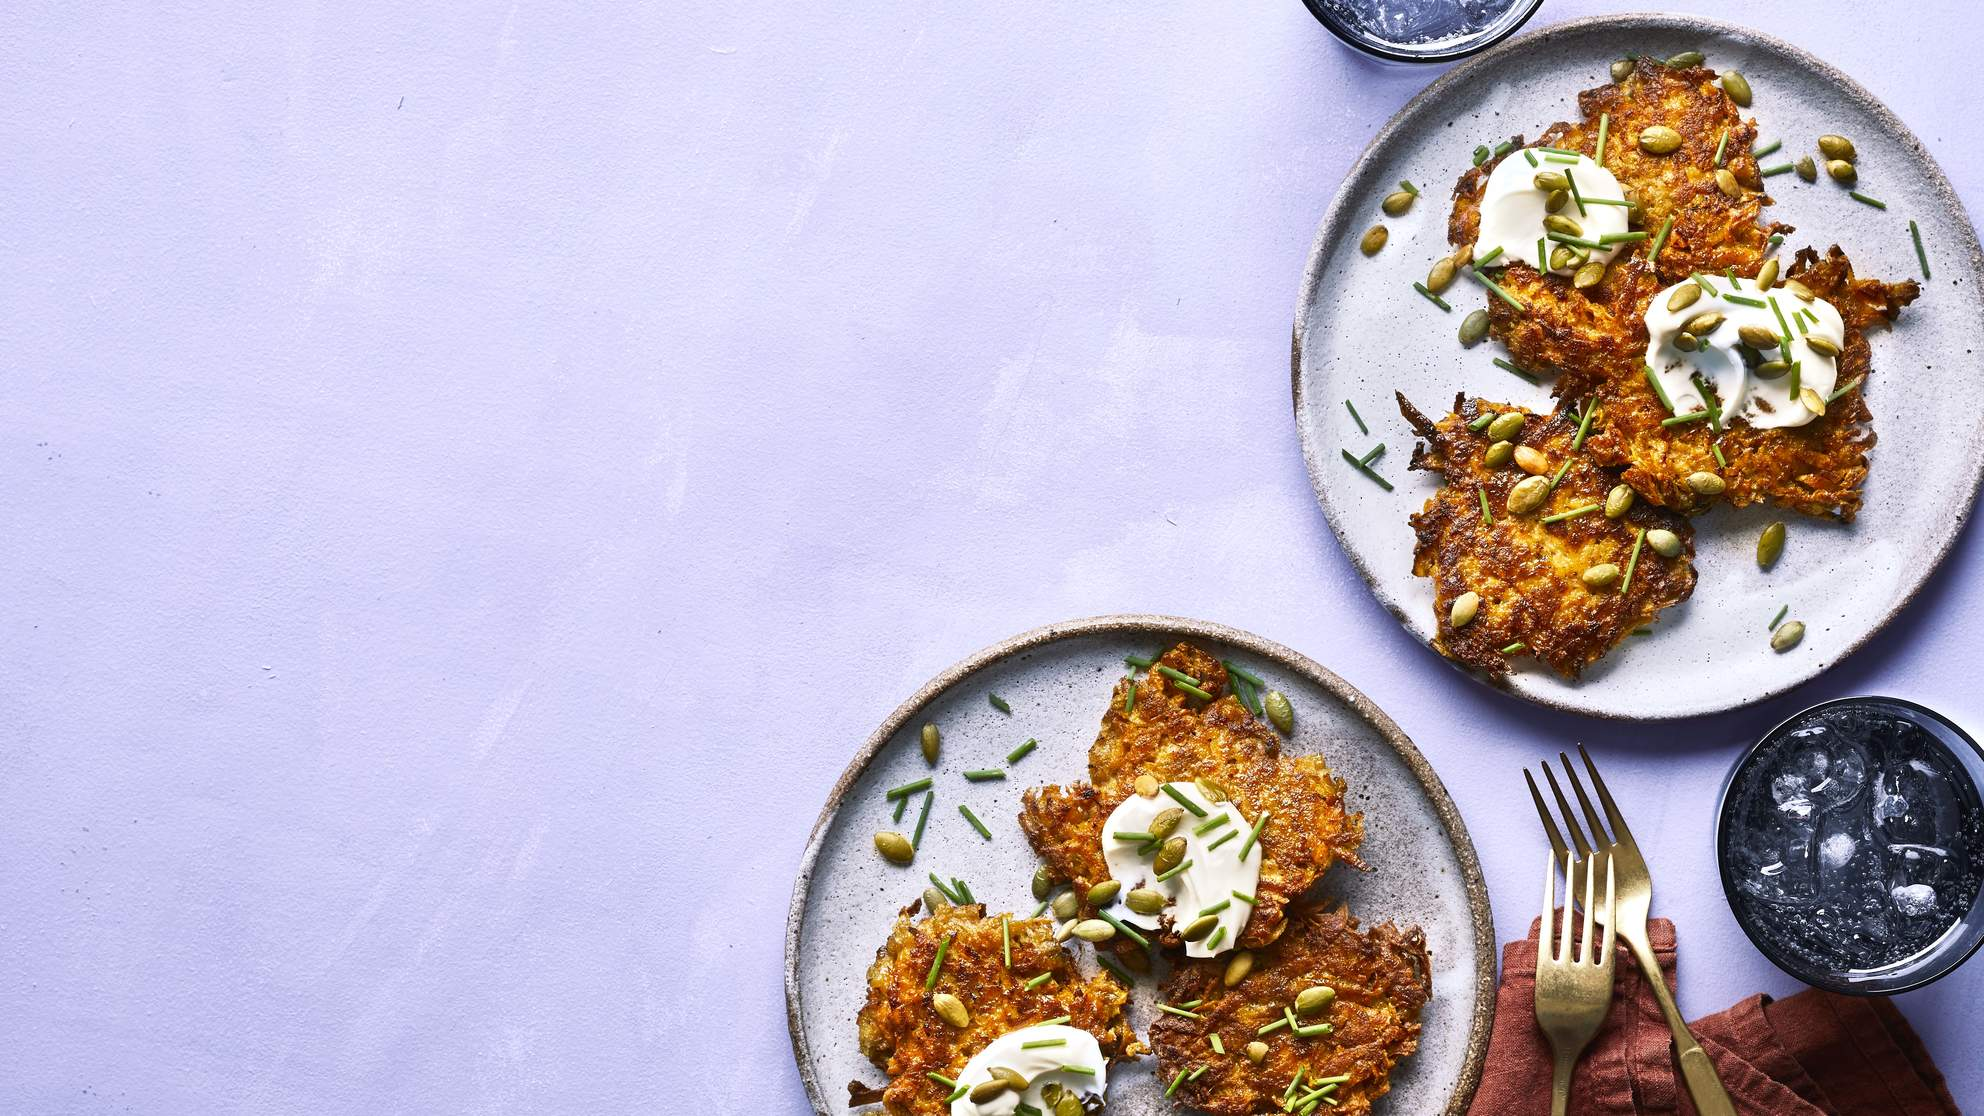 latkes-potato-recipes-health-mag-october-2019